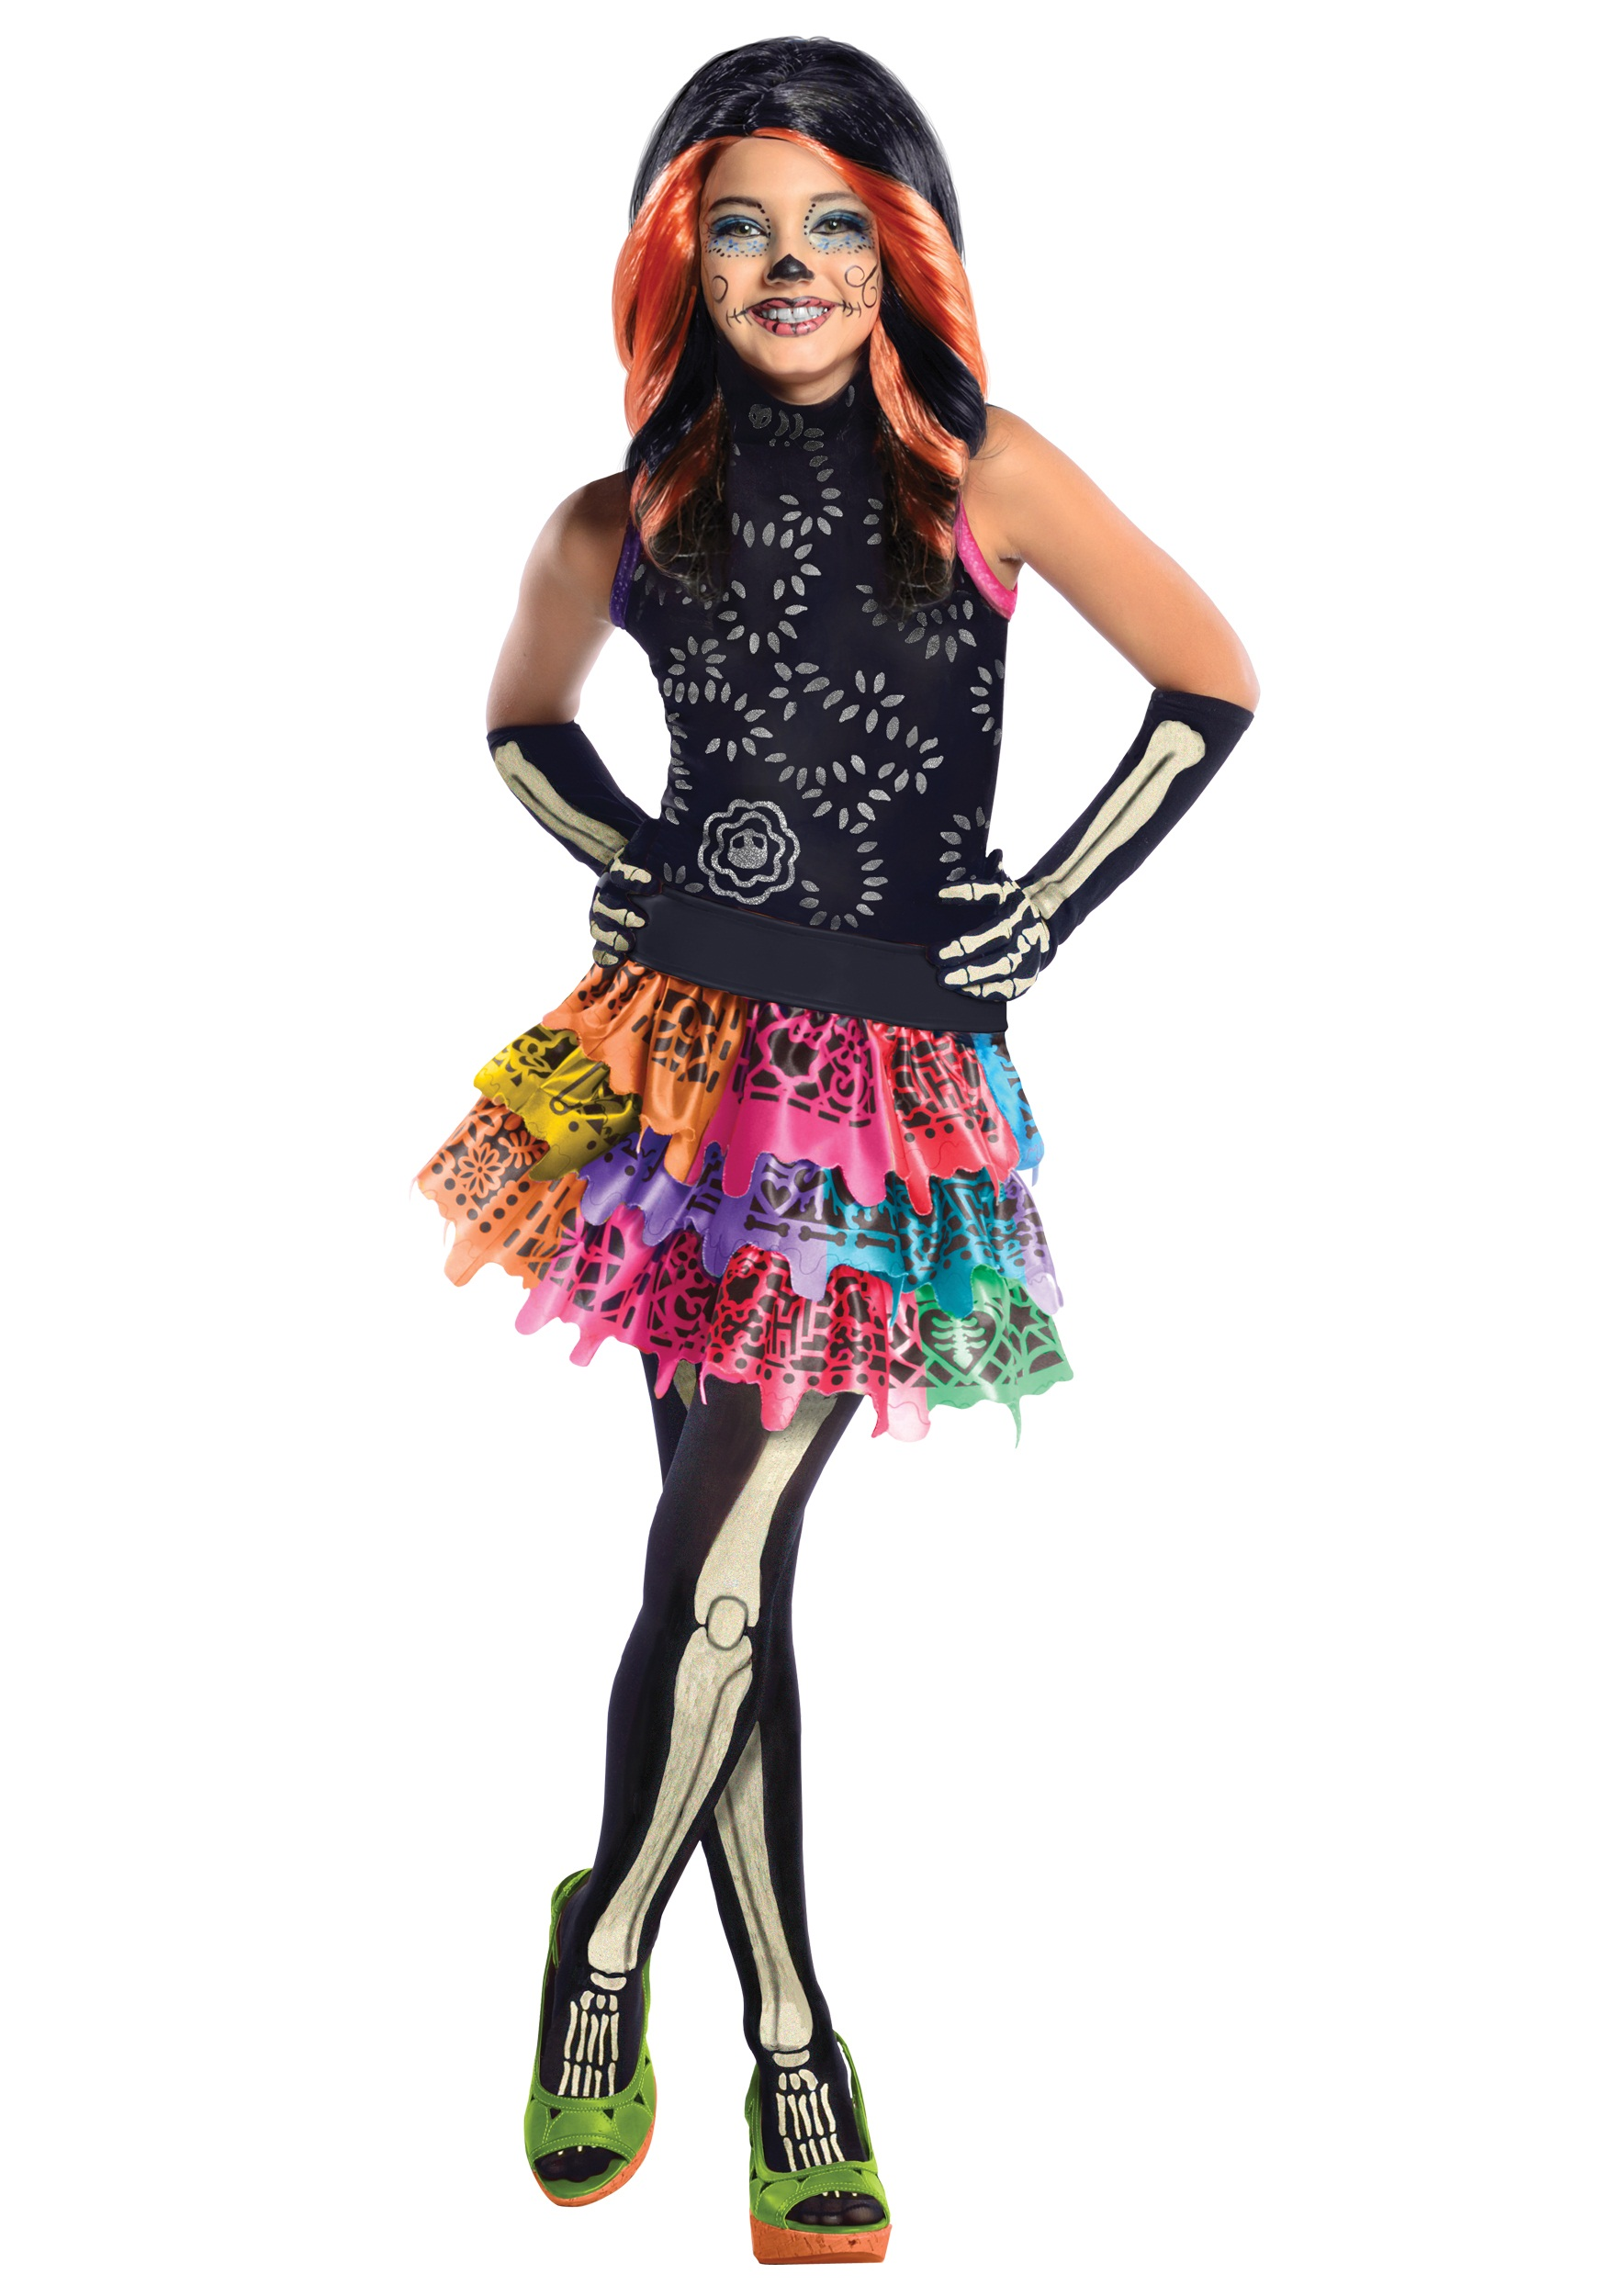 Monster High Skelita Calaveras Child Costume  sc 1 st  Halloween Costumes & Monster High Costumes u0026 Accesories - HalloweenCostumes.com